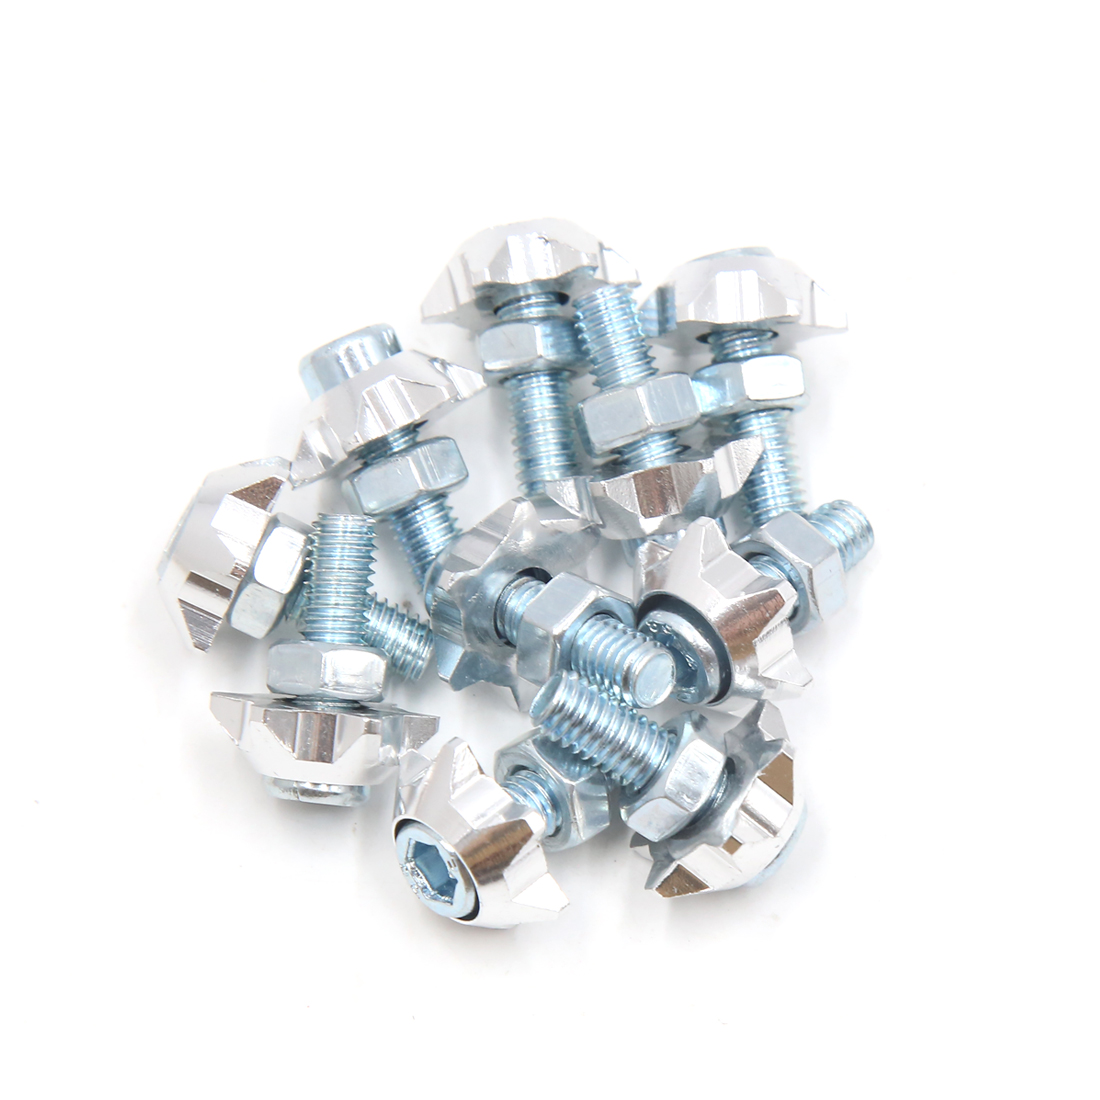 10pcs Silver Tone Aluminum Alloy Star Shaped Scooter License Plate Bolts Screws